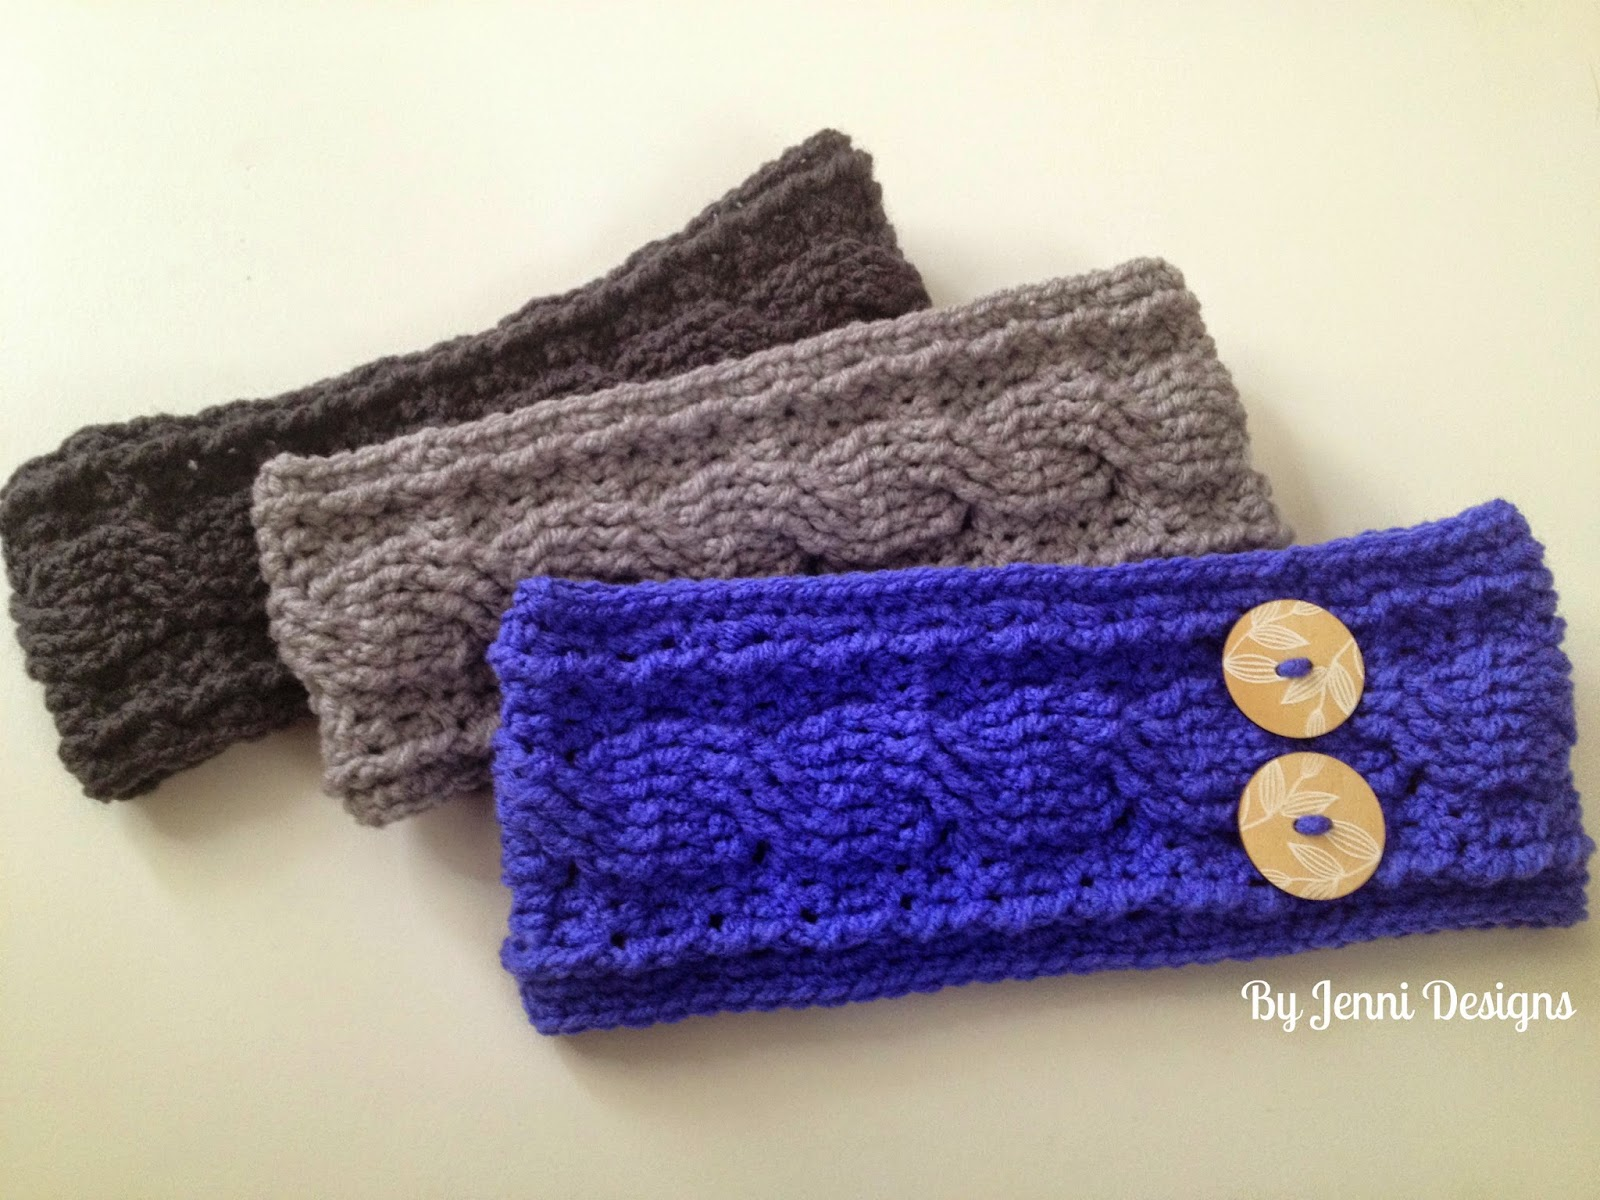 Infant Ear Warmer Crochet Pattern : By Jenni Designs: Crochet Cable Ear Warmer Pattern